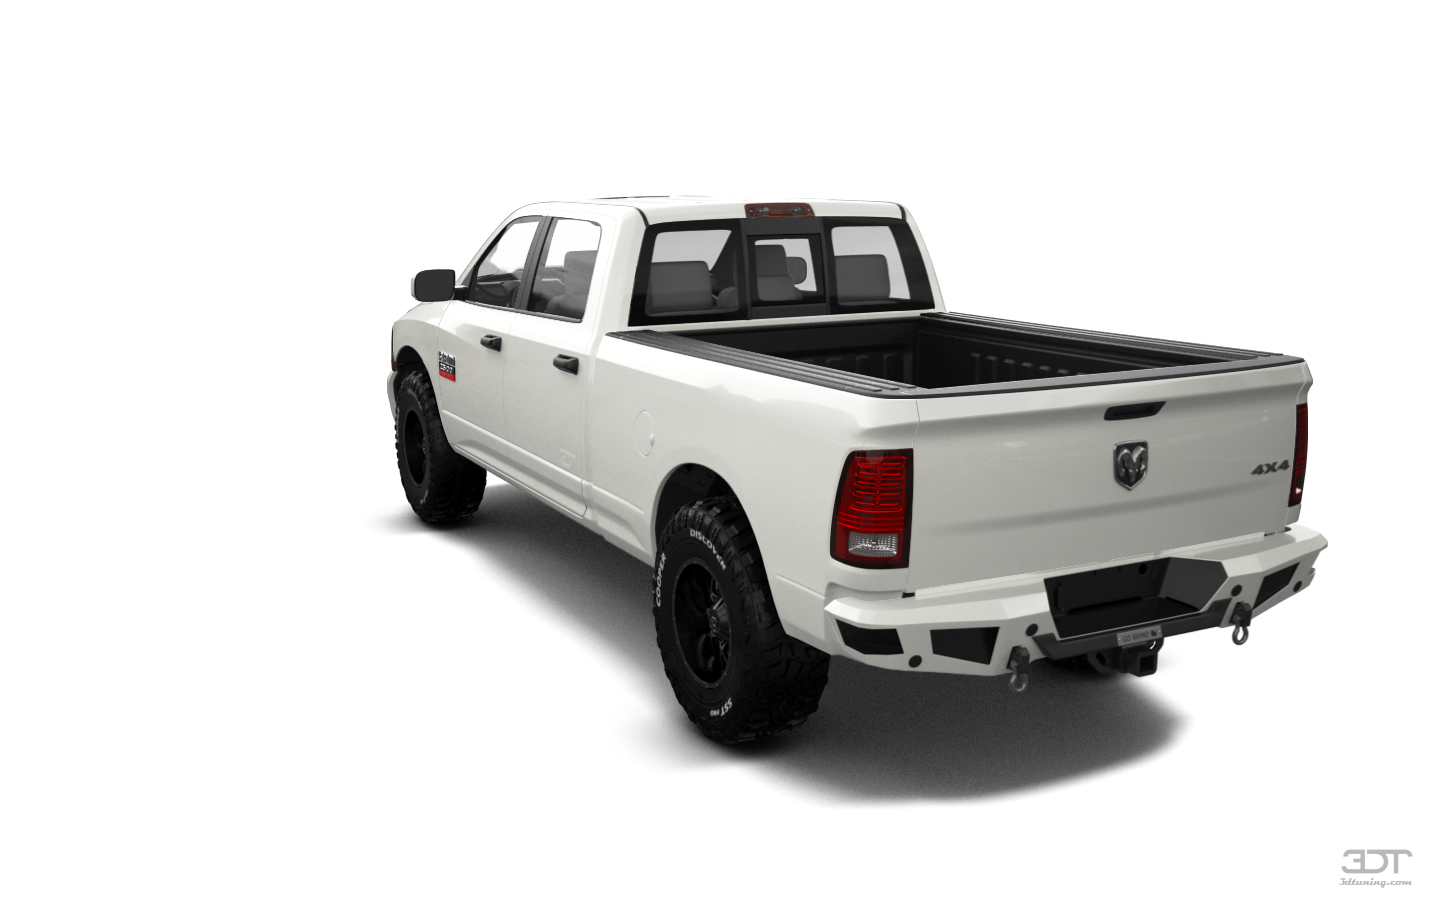 Dodge Ram 2500 4 Door Truck 2014 tuning